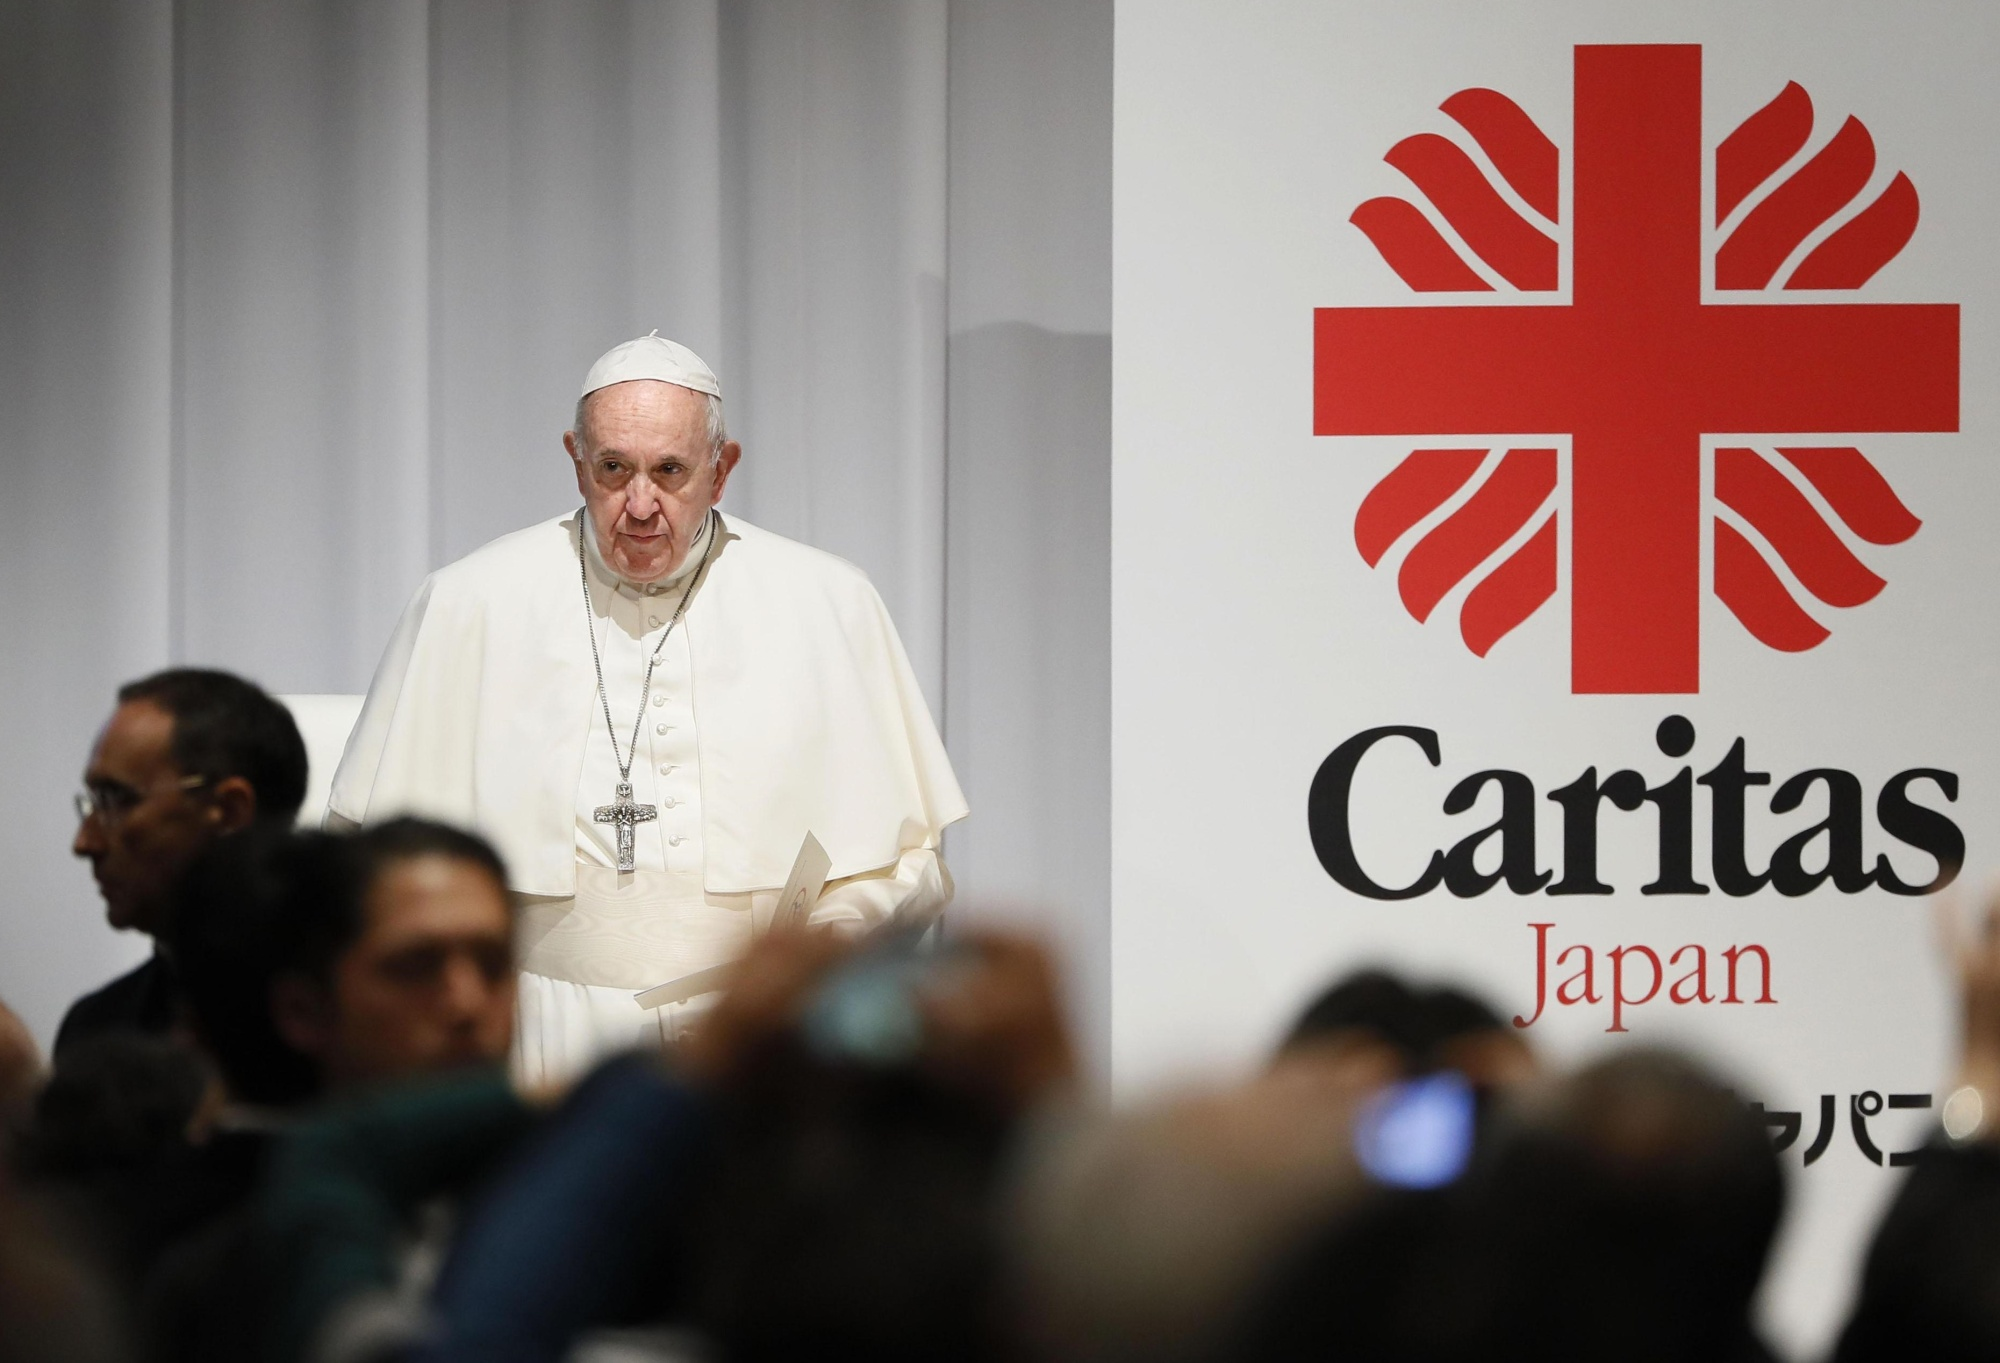 Pope Francis meets with victims of the March 2011 earthquake and tsunami on Monday in Tokyo. | KYODO